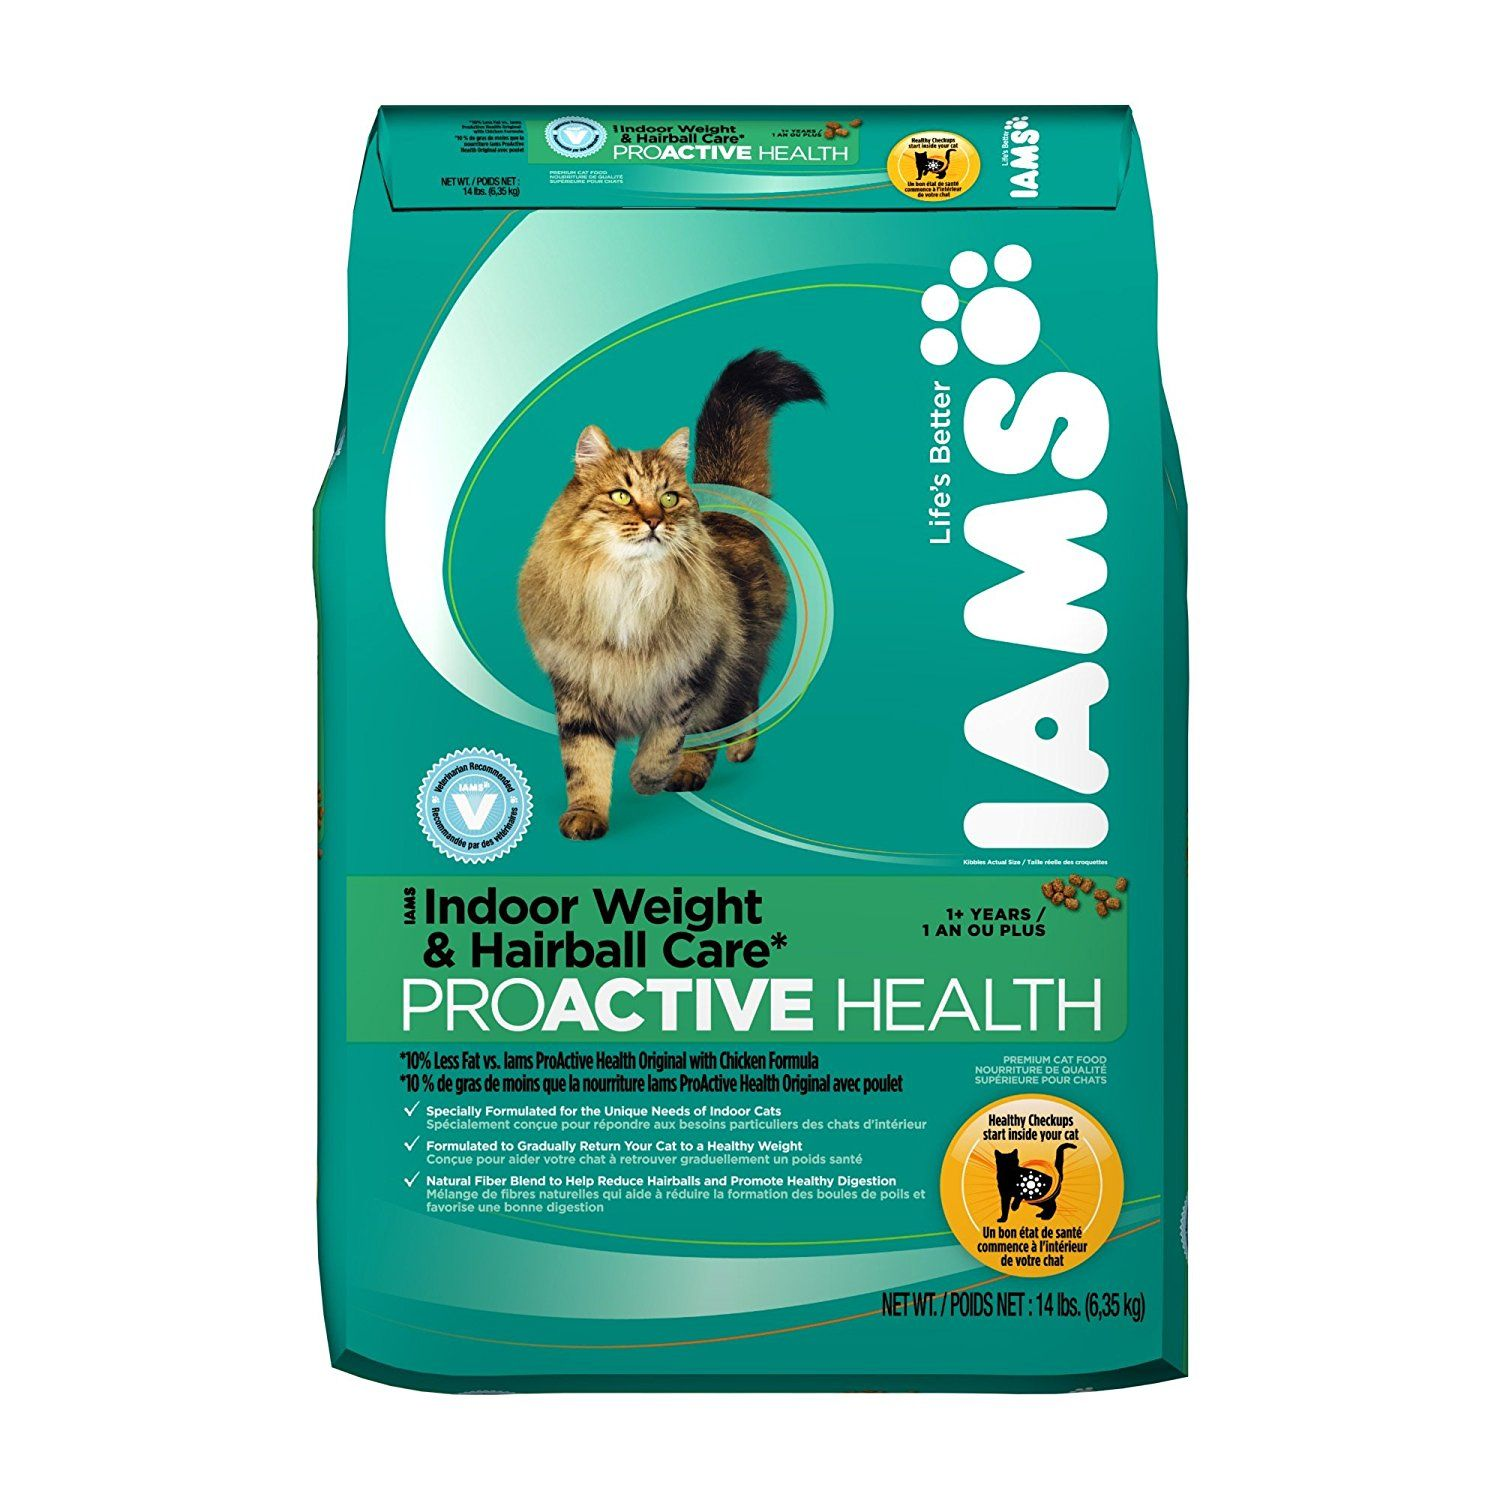 IAMS PROACTIVE HEALTH Adult Indoor Weight and Hairball Care